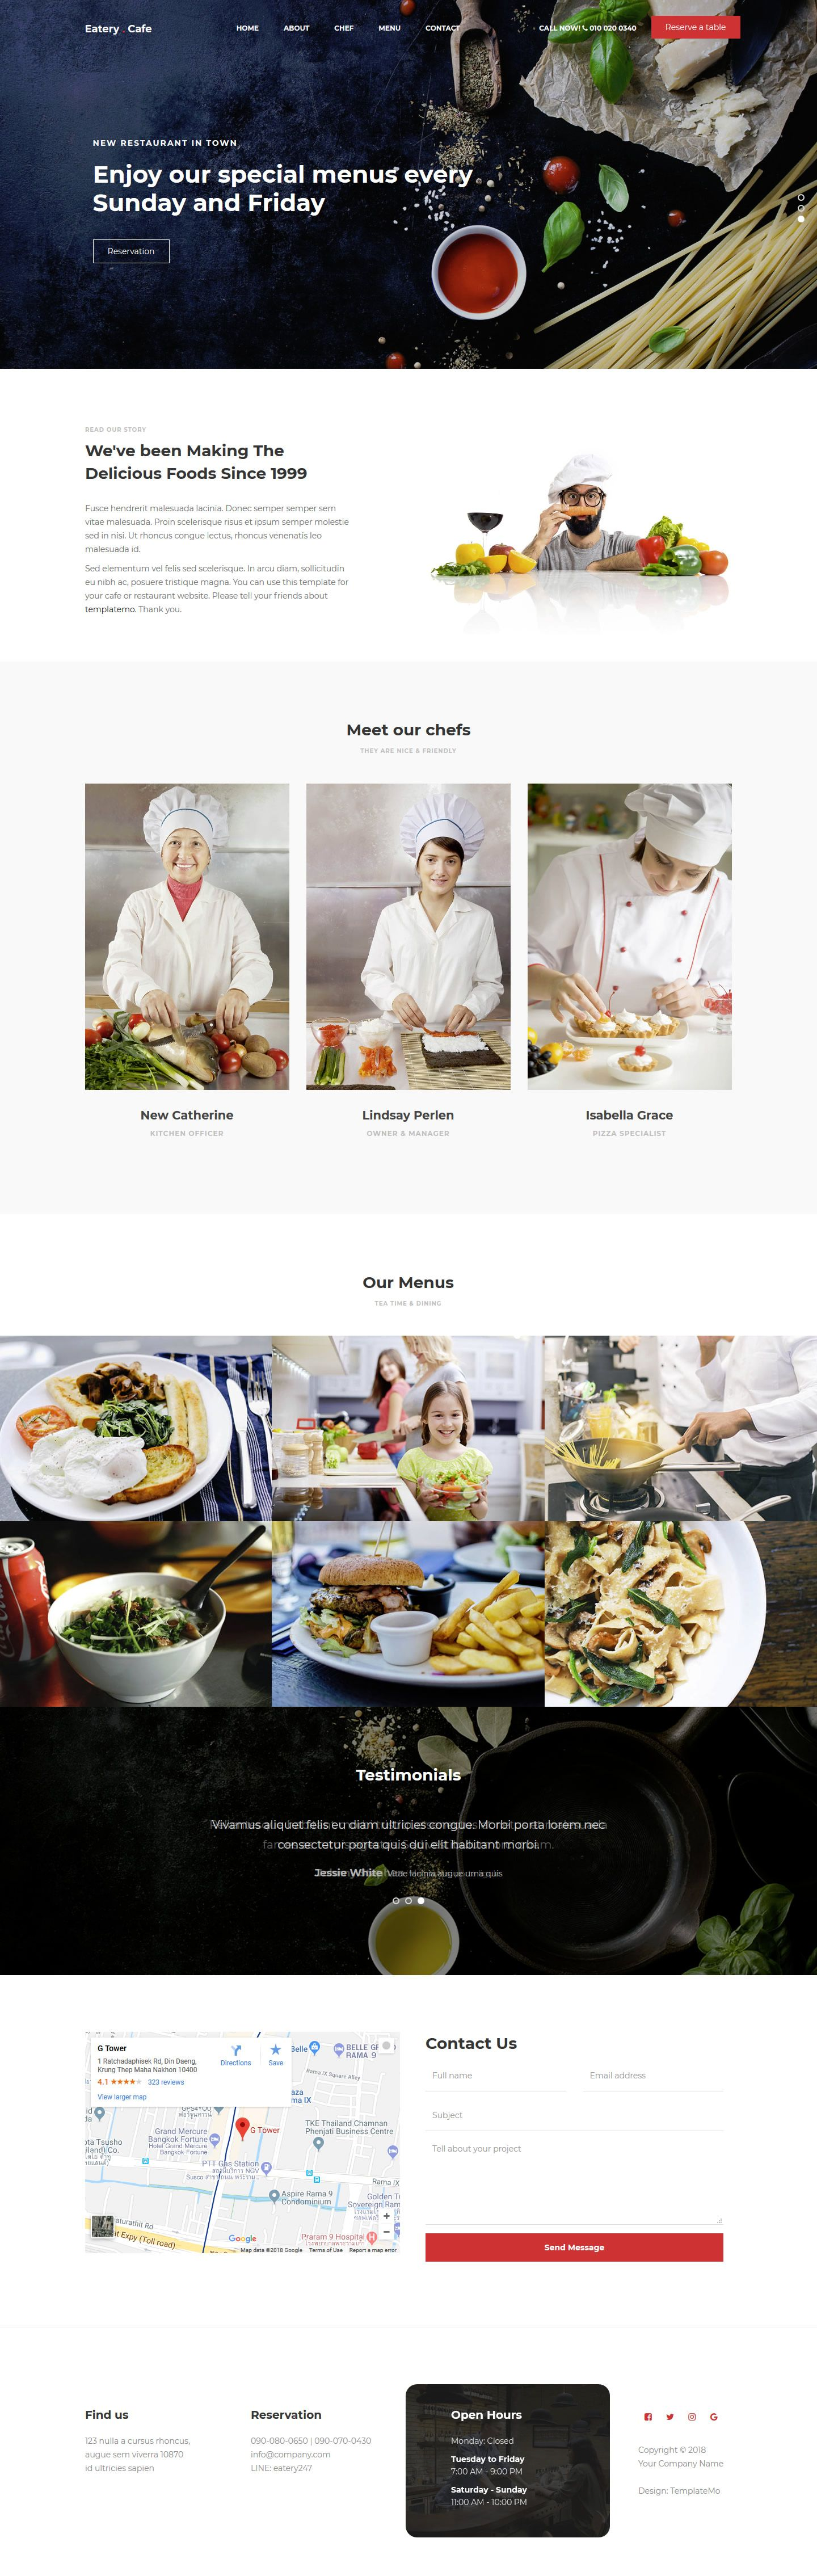 Eatery cafe is a restaurant css web template with